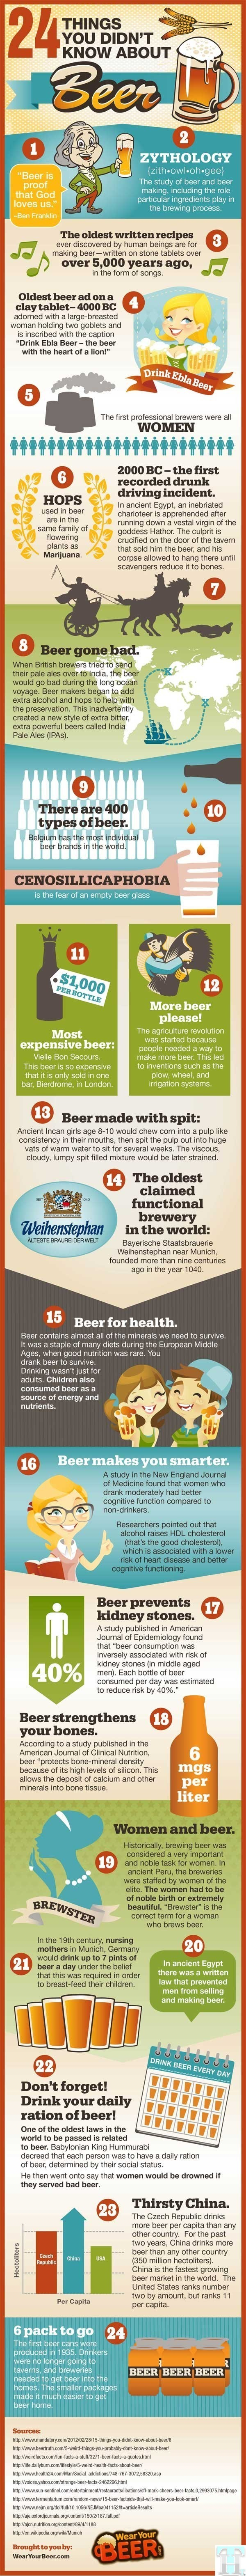 24 Things to know about Beer